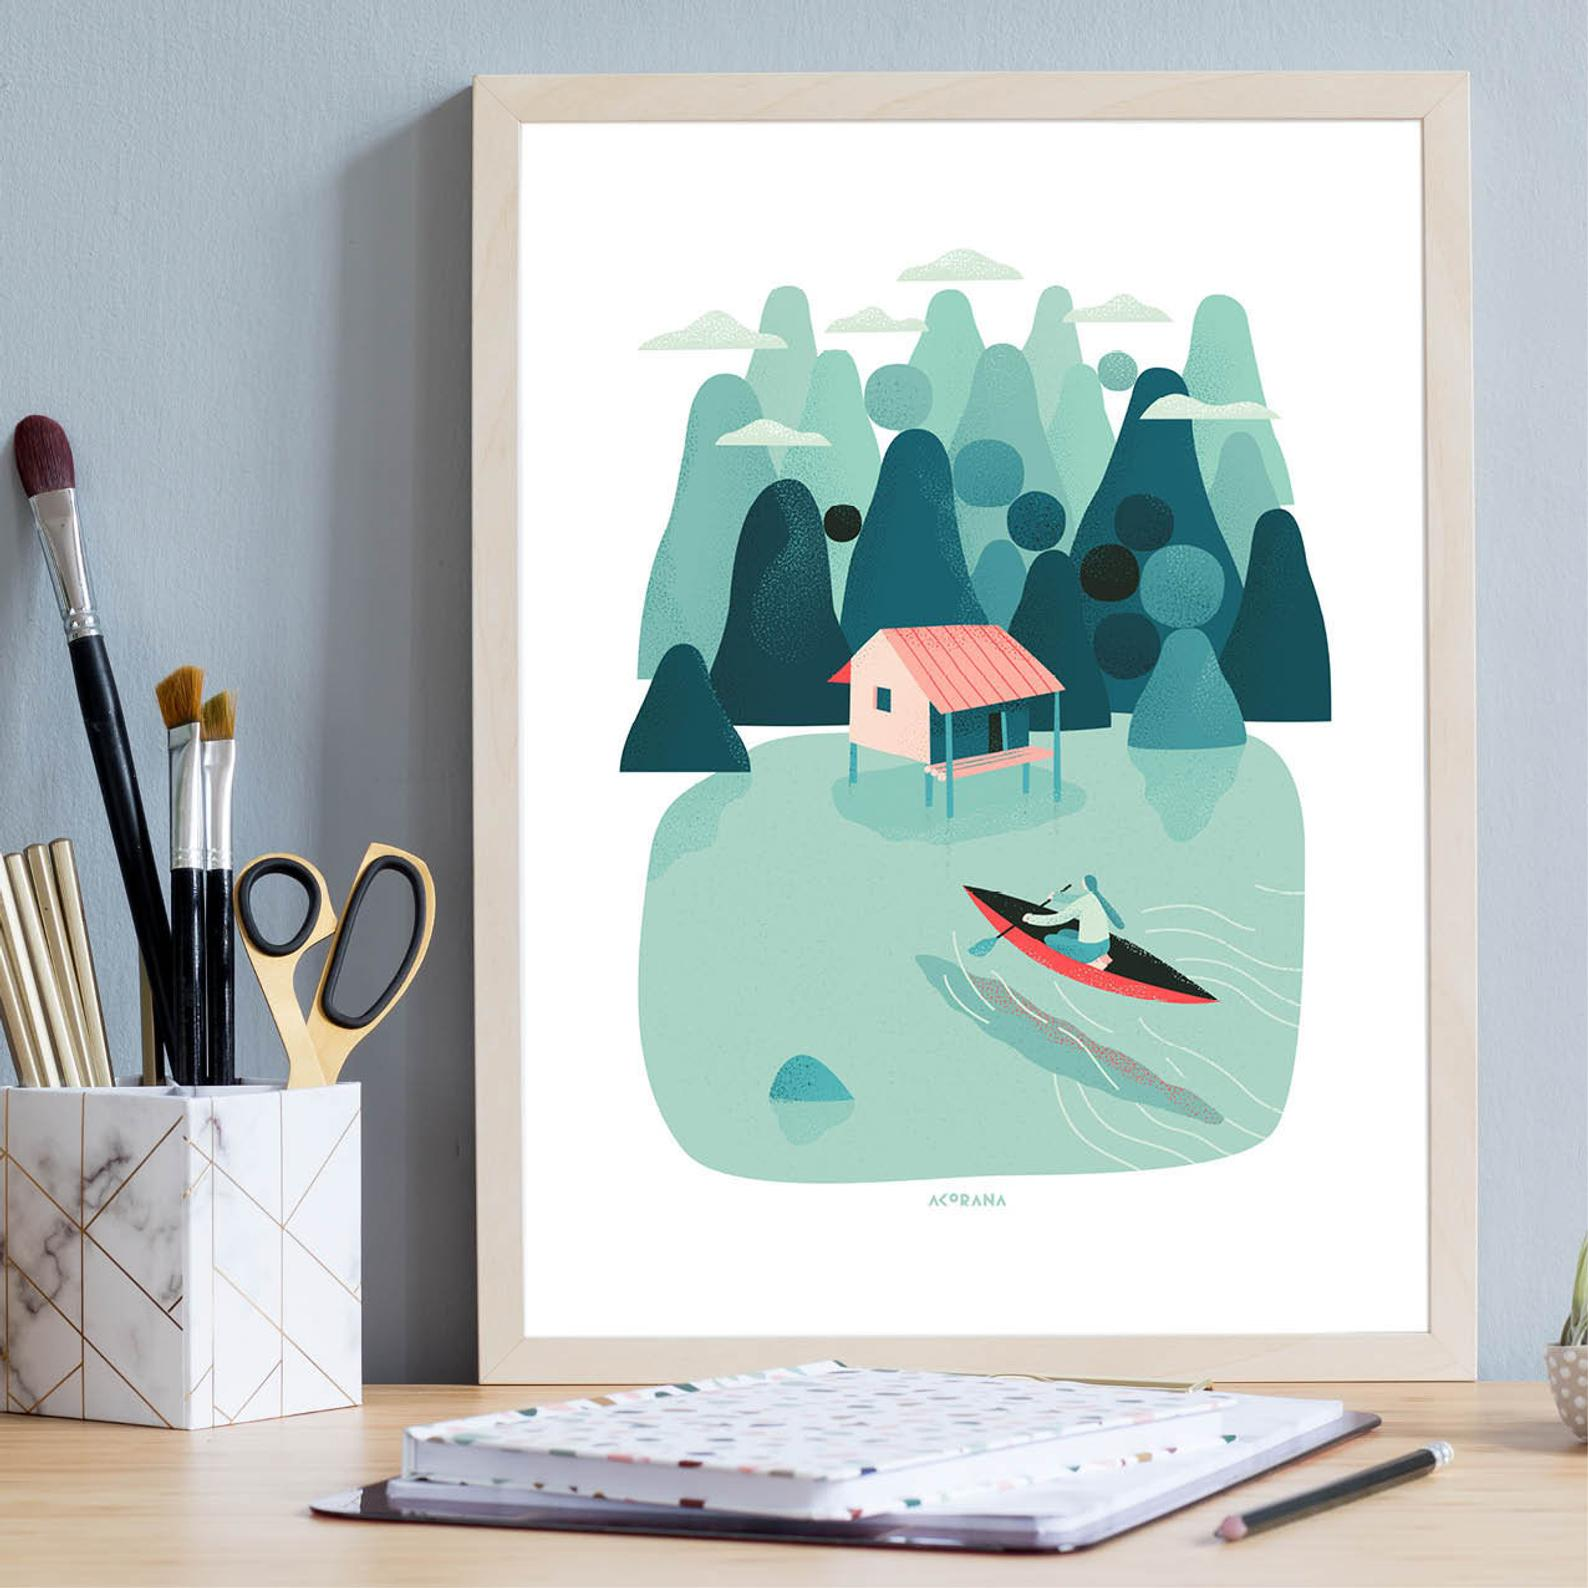 Sailing on silence poster